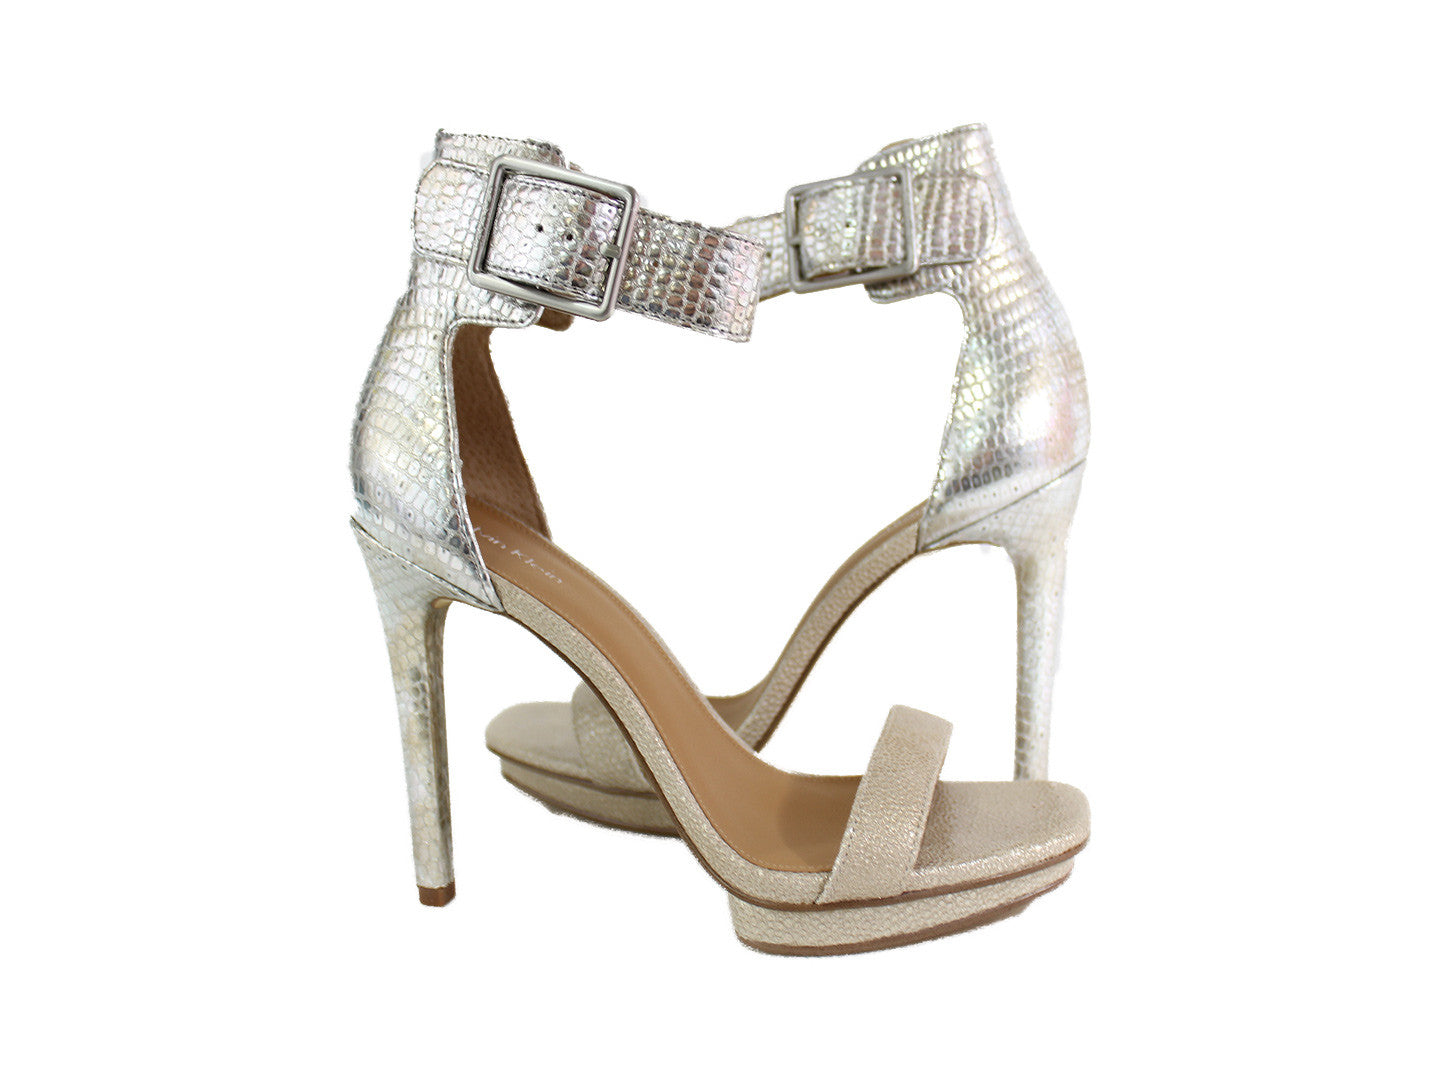 Ankle Strap Square Toe Heel